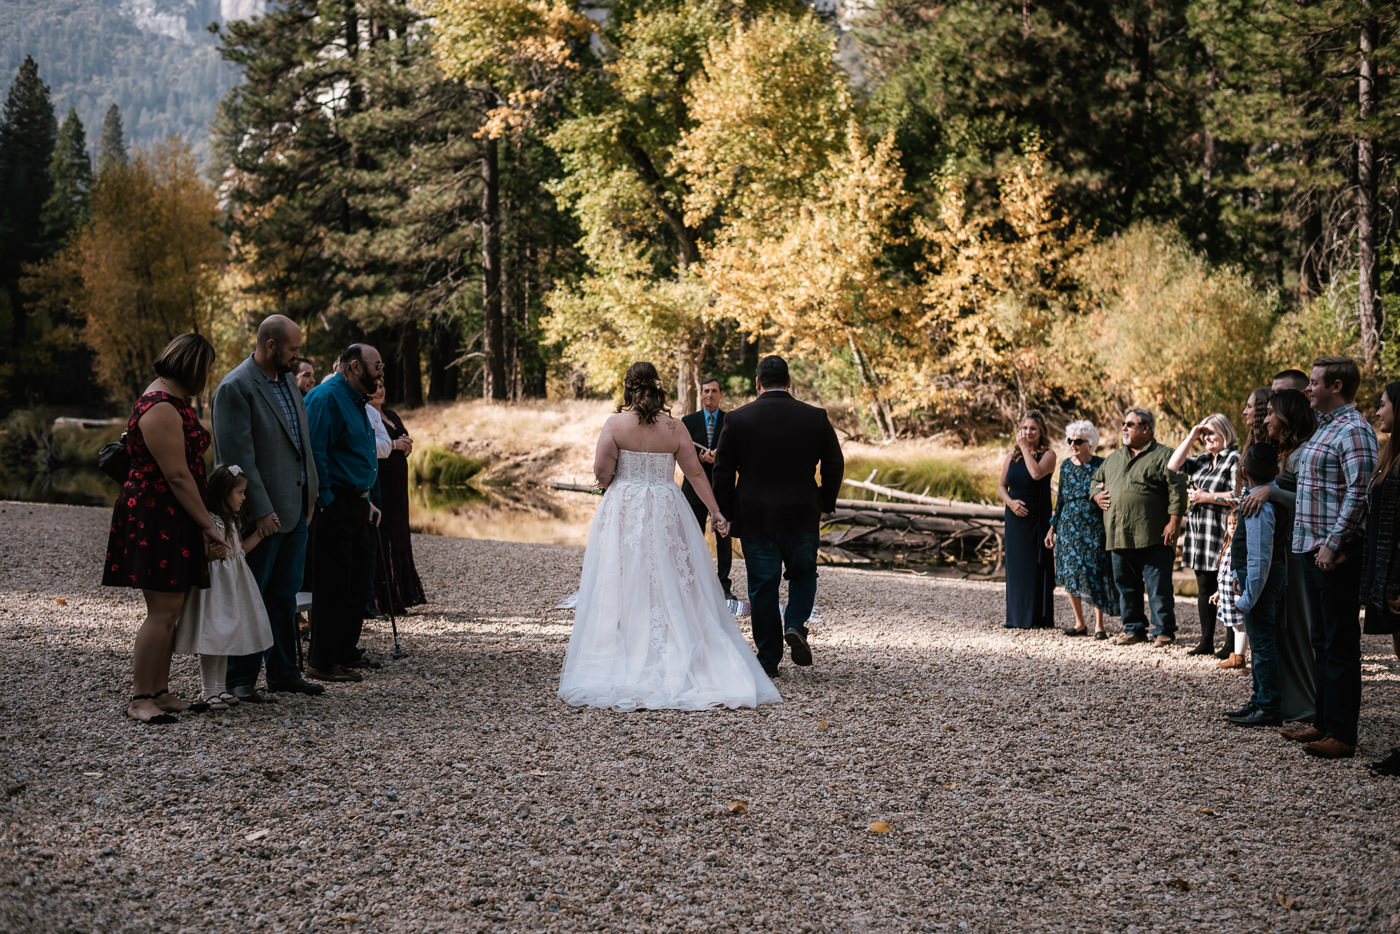 cathedral-beach-elopement-ceremony-yosemite-3.jpg